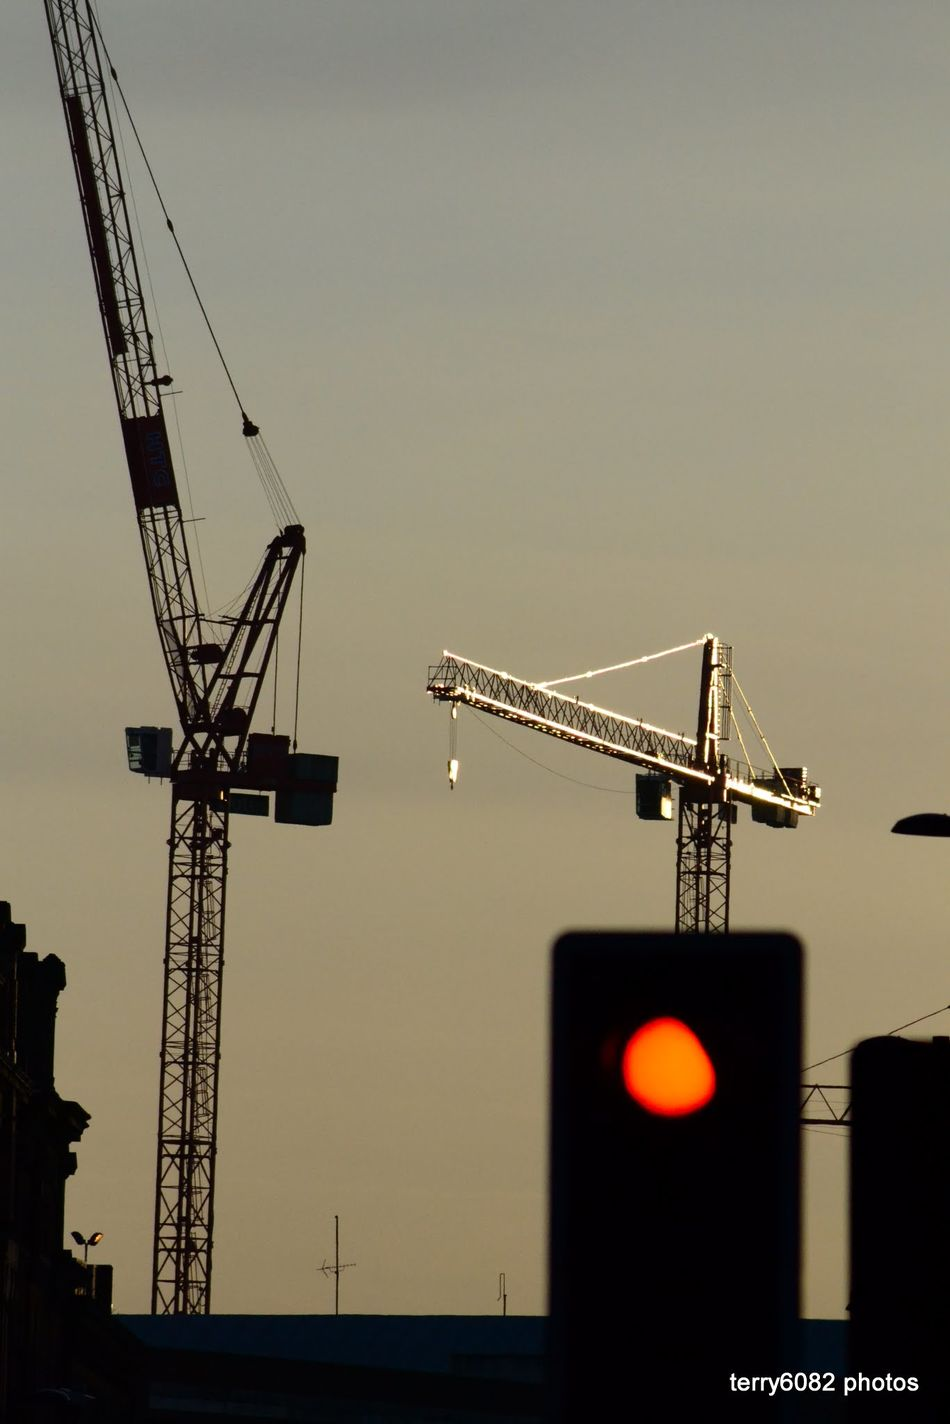 Architecture Building Exterior Built Structure City Construction Construction Machinery Construction Site Crane Crane - Construction Machinery Day Development Illuminated Industrial Equipment Industry Low Angle View Machinery No People Outdoors Progress Sky Stoplight Sunset